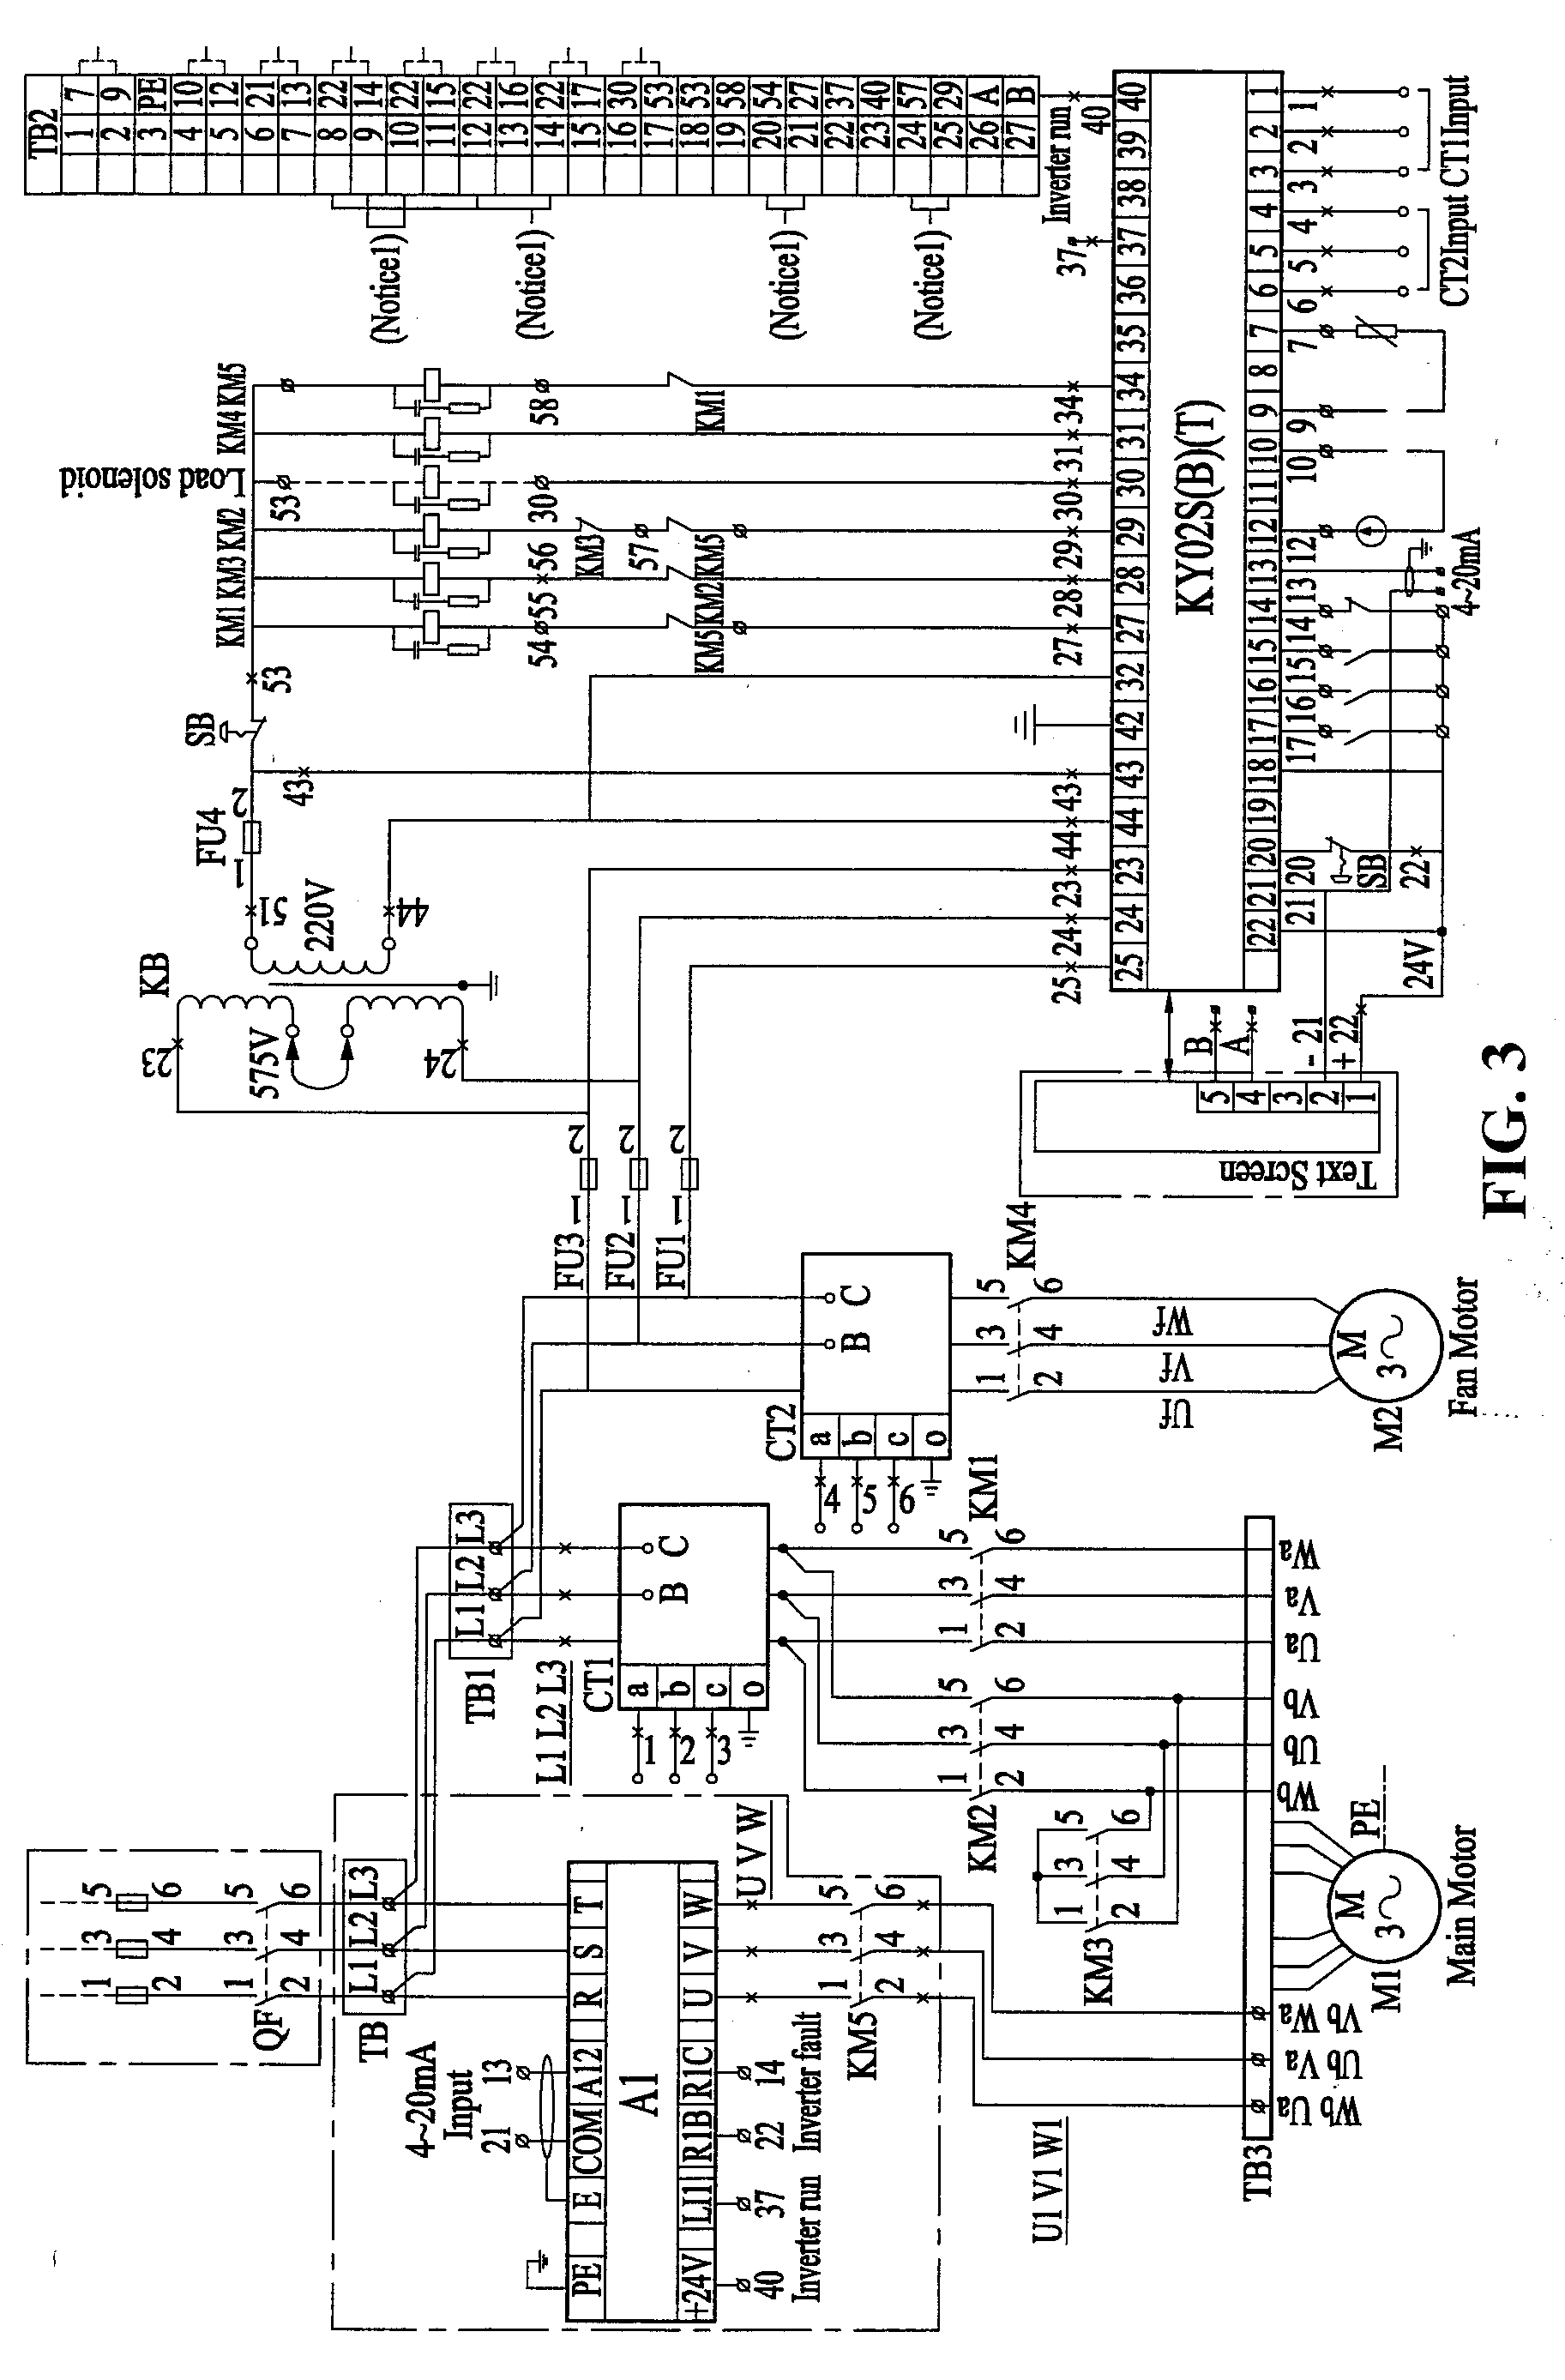 Brevet Us20100310402 Screw Compressor Google Brevets Refrigerator Wiring Diagram 230v Patent Drawing